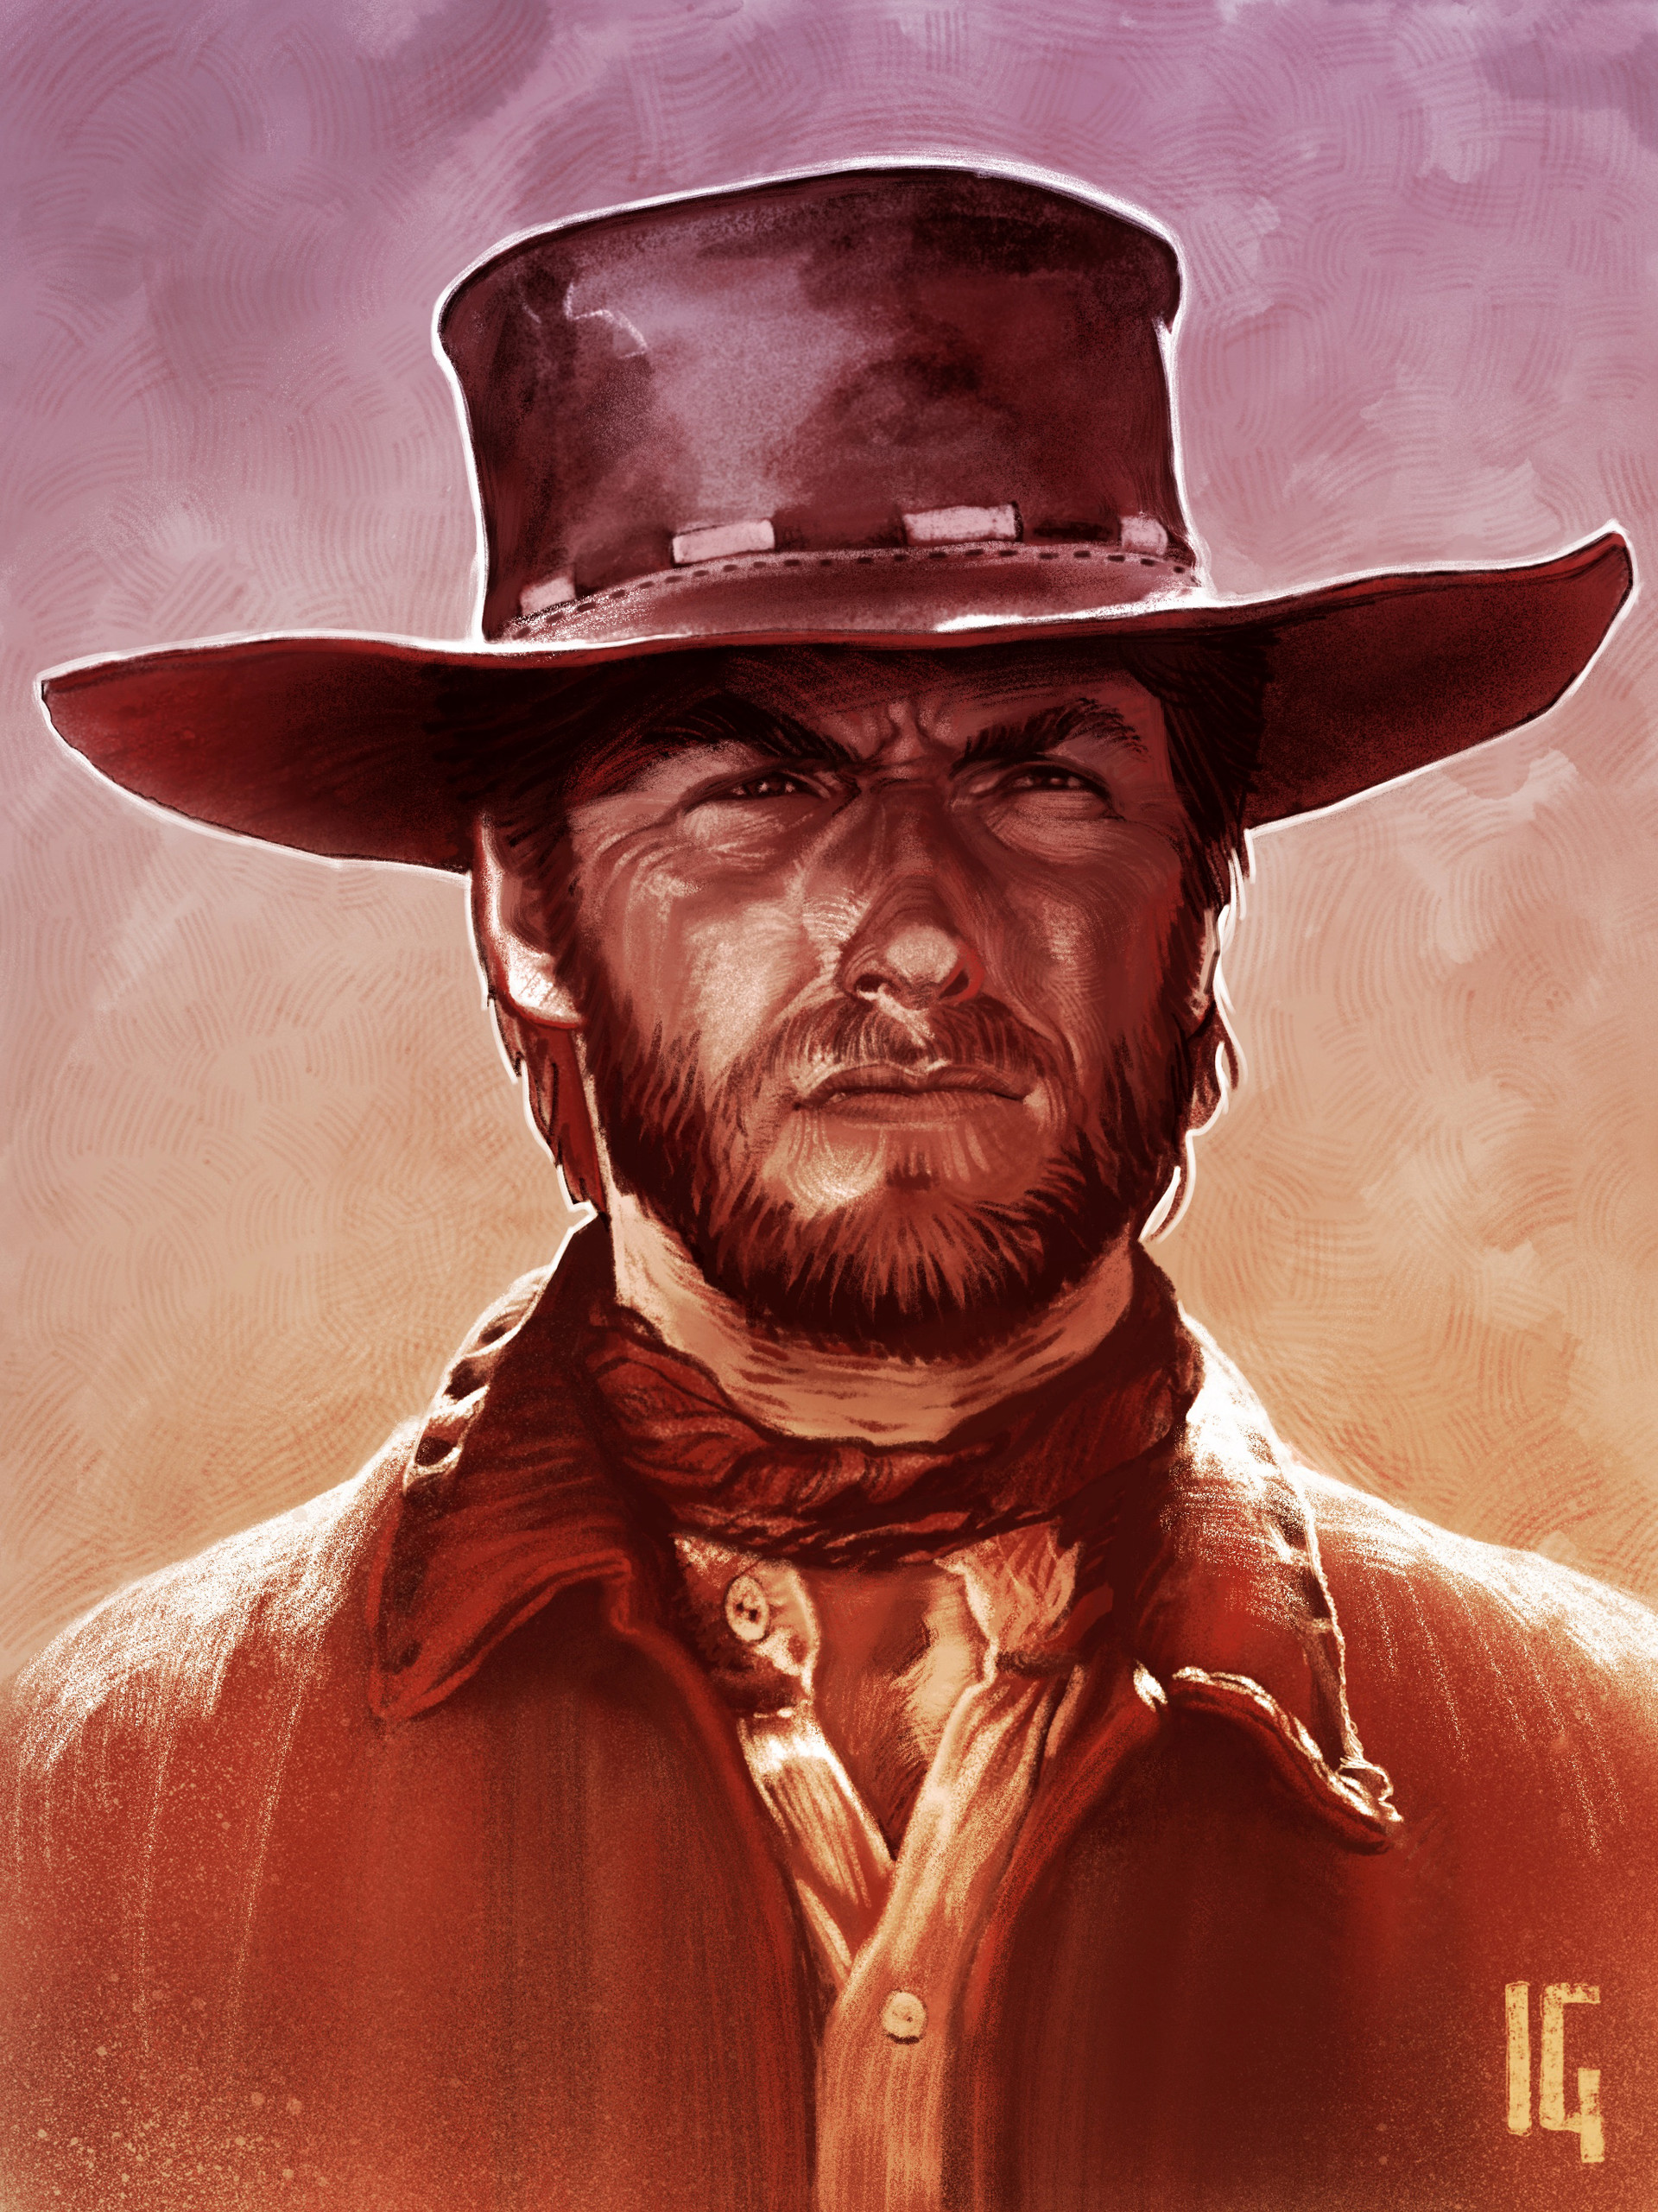 AND THE UGLY ART PRINT THE BAD CLINT EASTWOOD THE GOOD